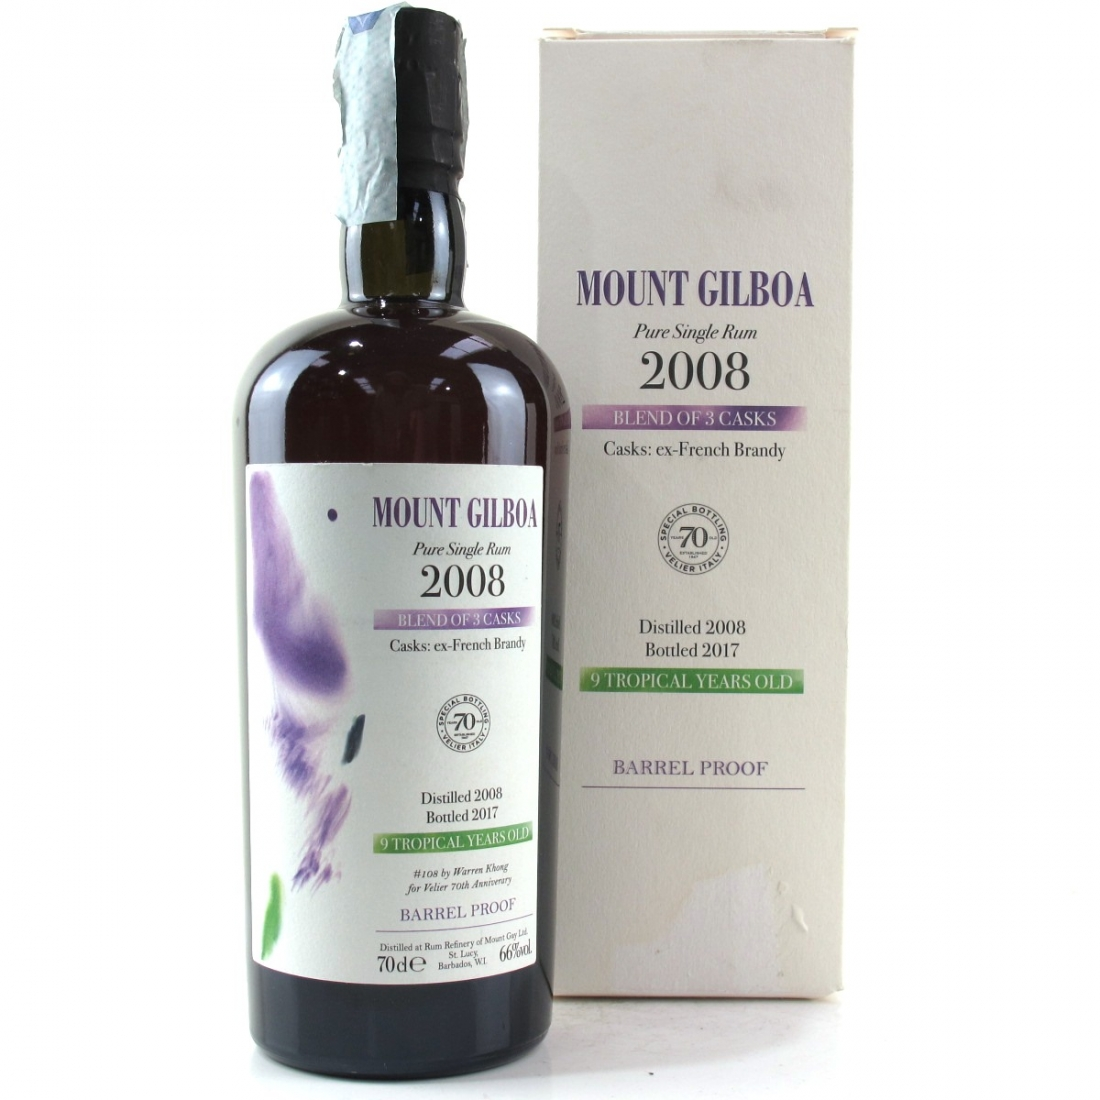 Mount Gilboa 2008 Pure Single Rum 9 Year Old / Velier 70th Anniverary